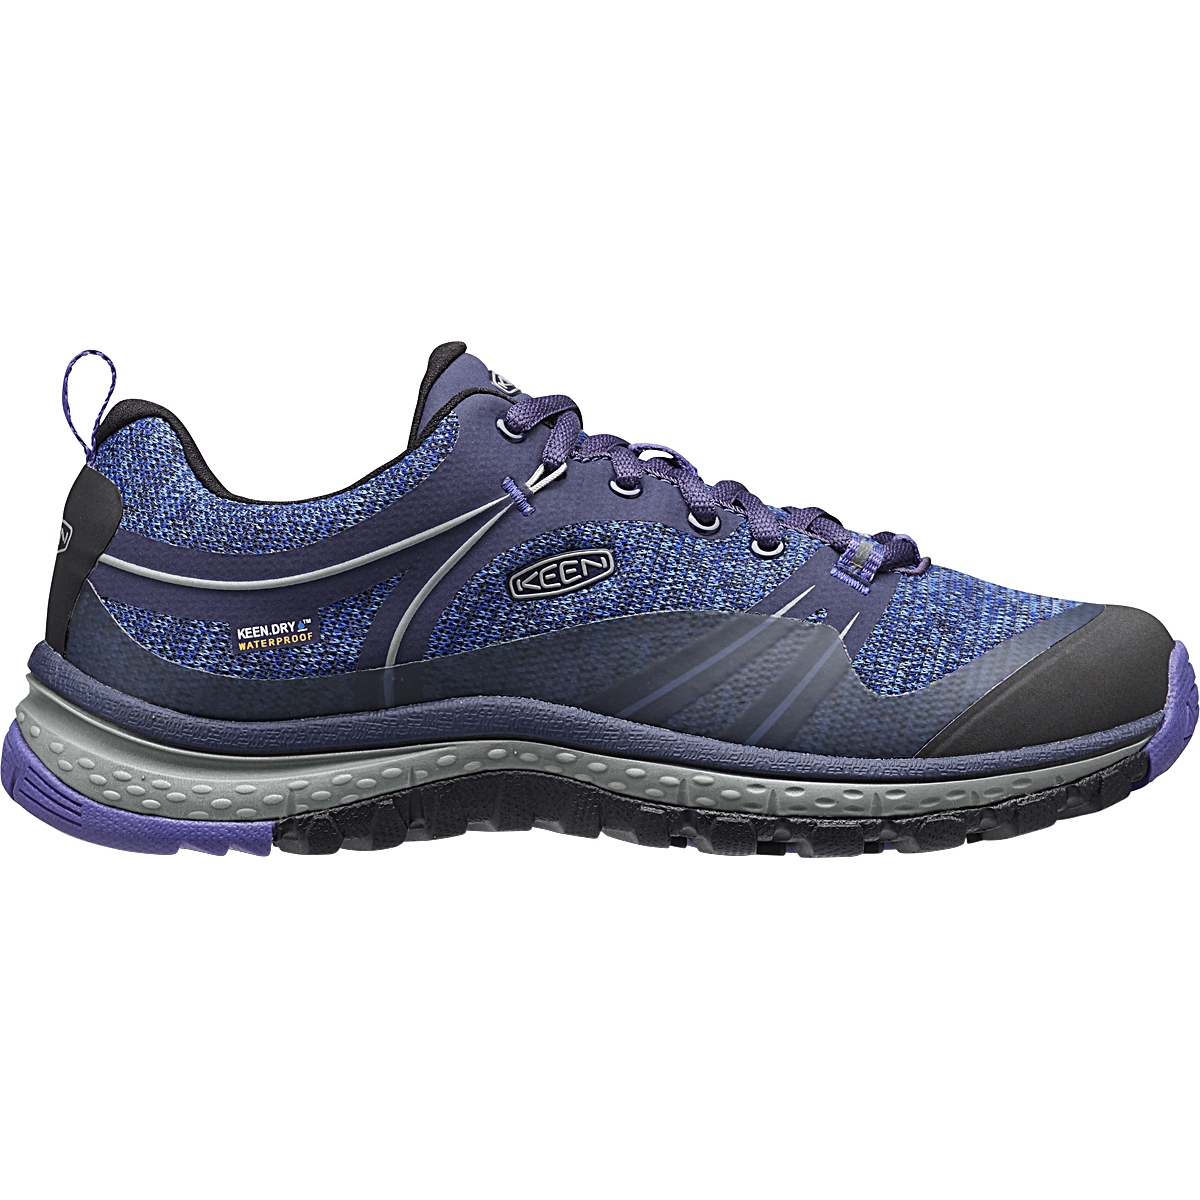 Keen Women's Terradora Waterproof Hiking Shoes, Astral Aura/liberty - Blue, 7